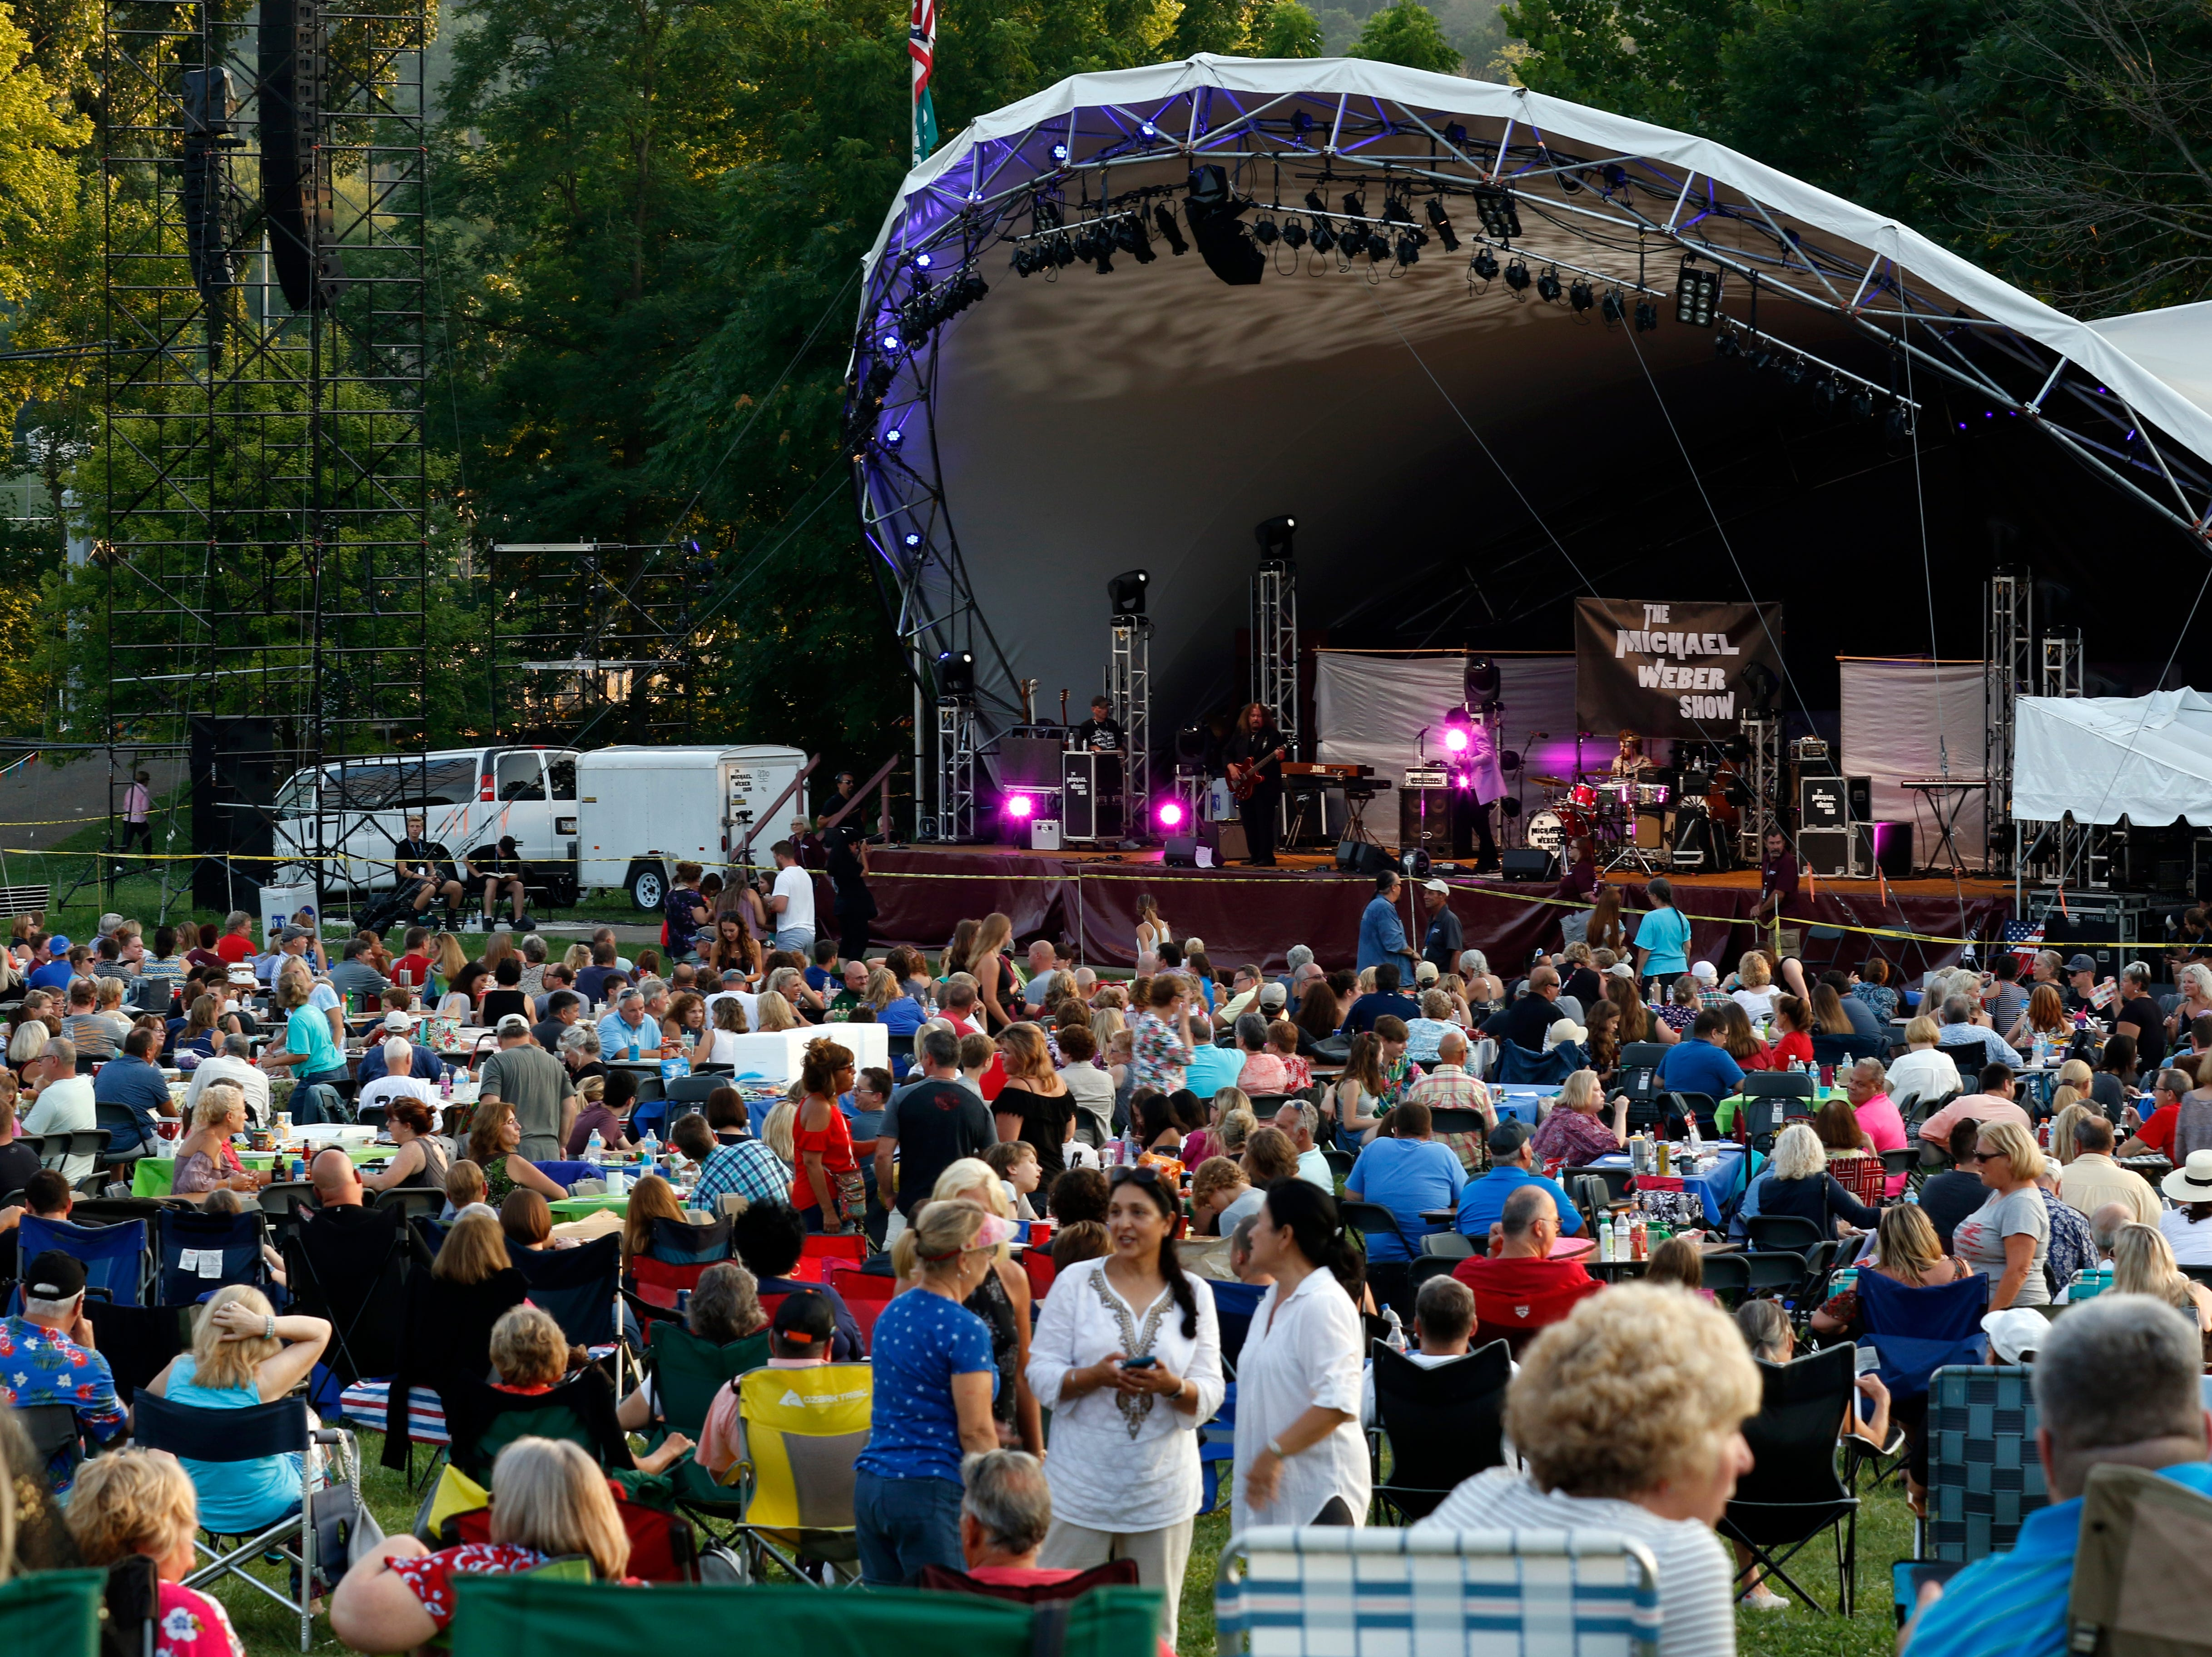 The Michael Weber Show performed Wednesday night, July 25, 2018, at the Ohio University Lancaster Wendel Concert Stage during the Lancaster Festival in Lancaster.